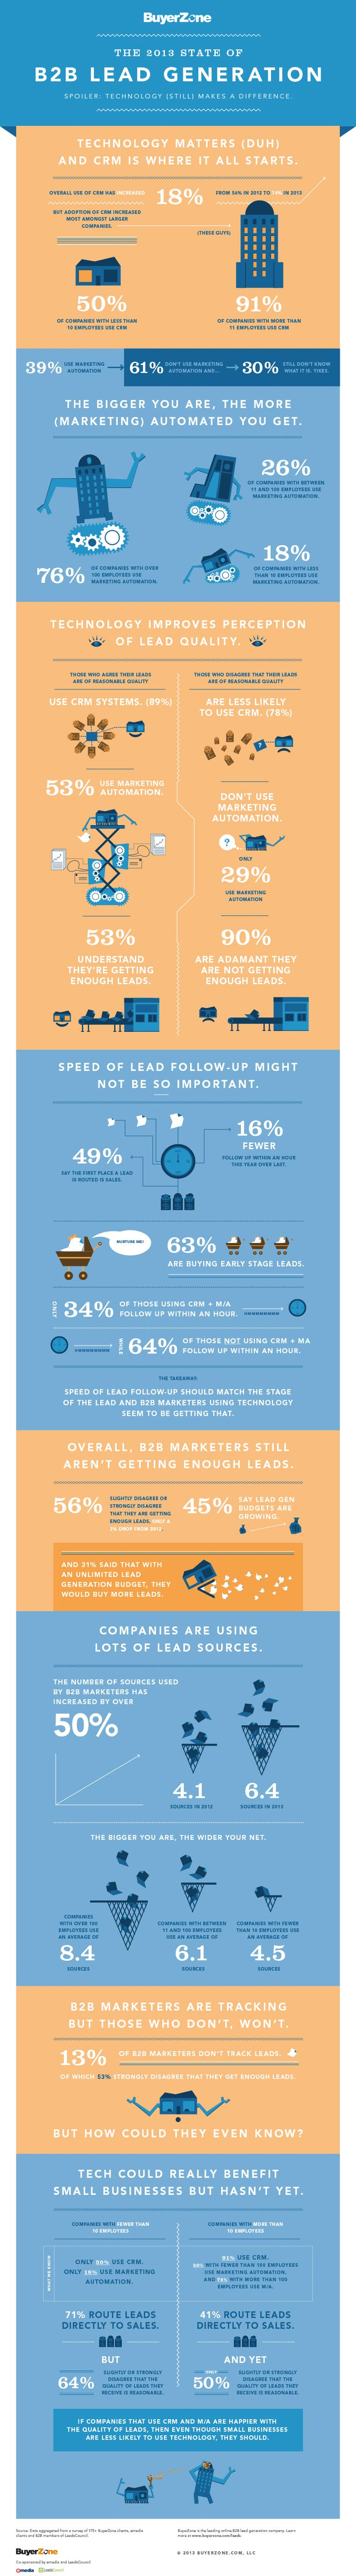 The State of B2B Lead Generation 2013 Infographic